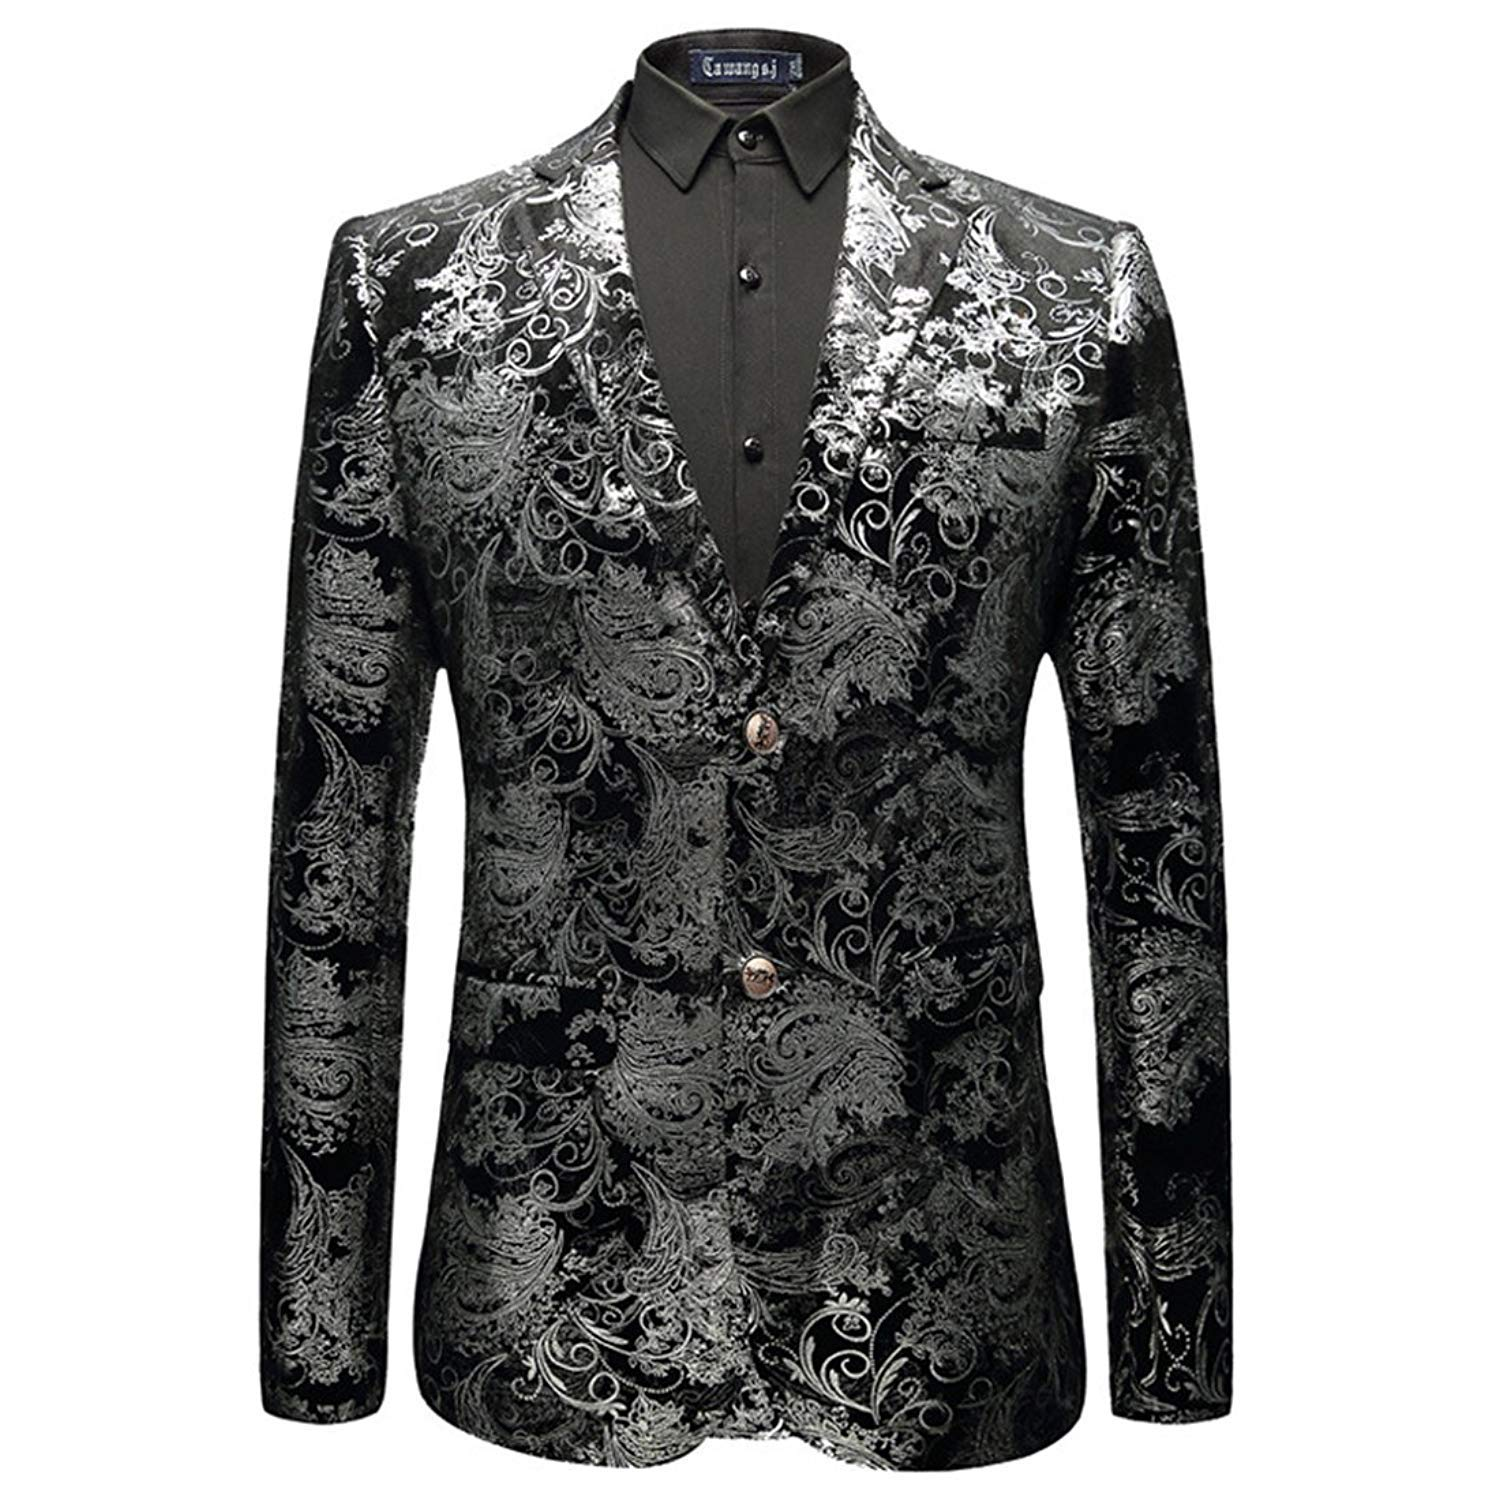 Huixin Mens Blazer Jacquard Bronzing Tuxedo Pleuche Suit Party Jacket Blazer Leisure Slim Fit Silver